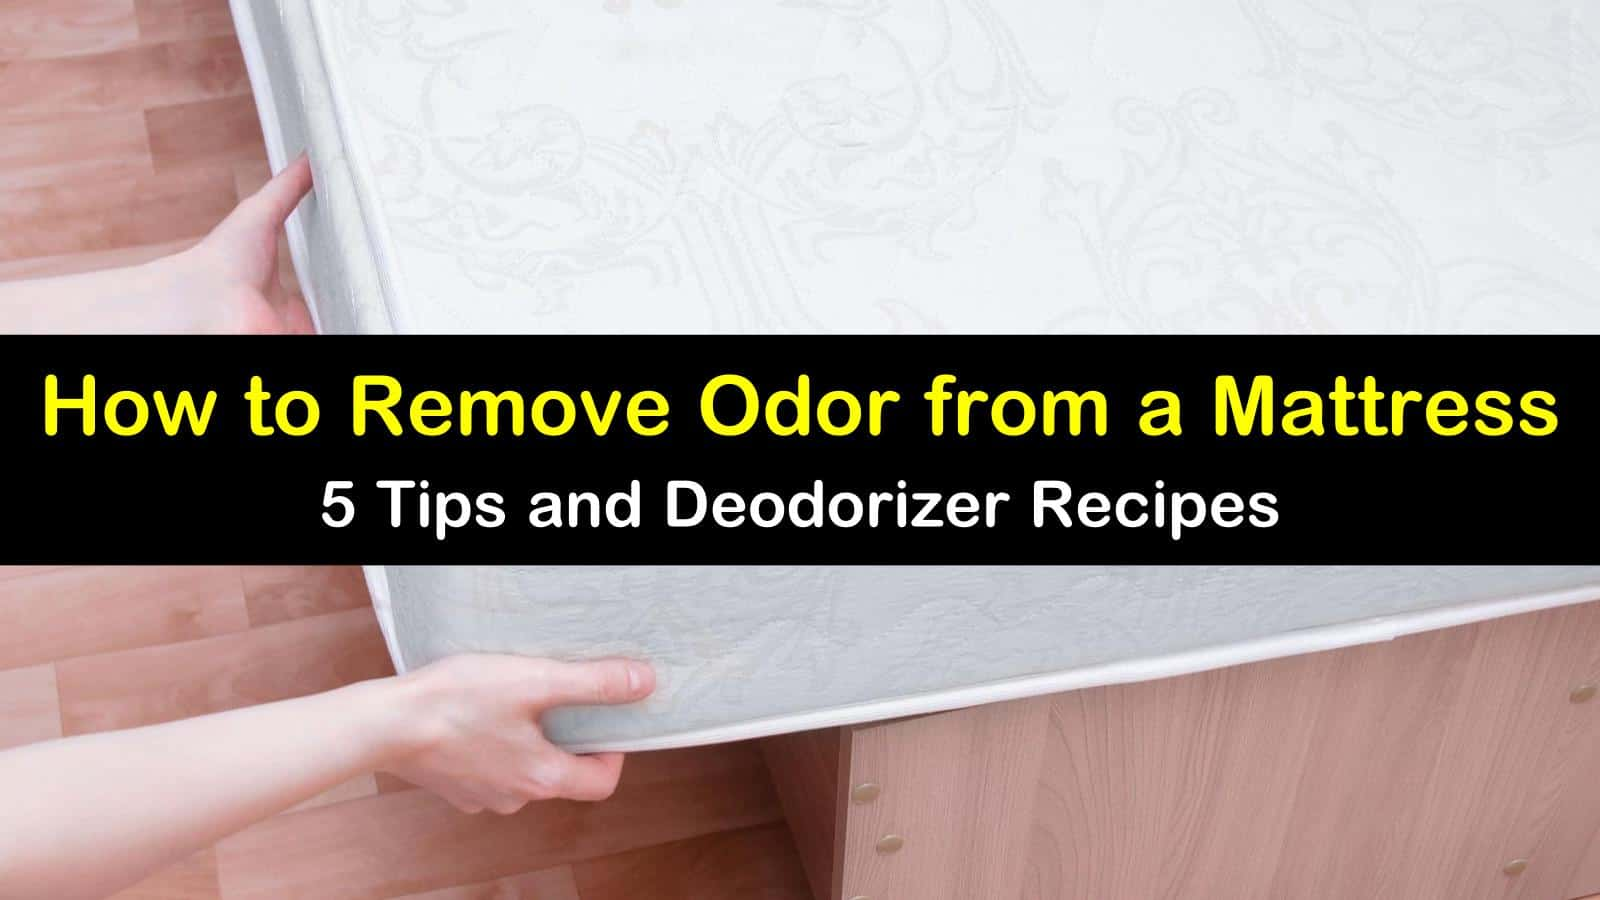 how to remove odor from mattress titleimg1